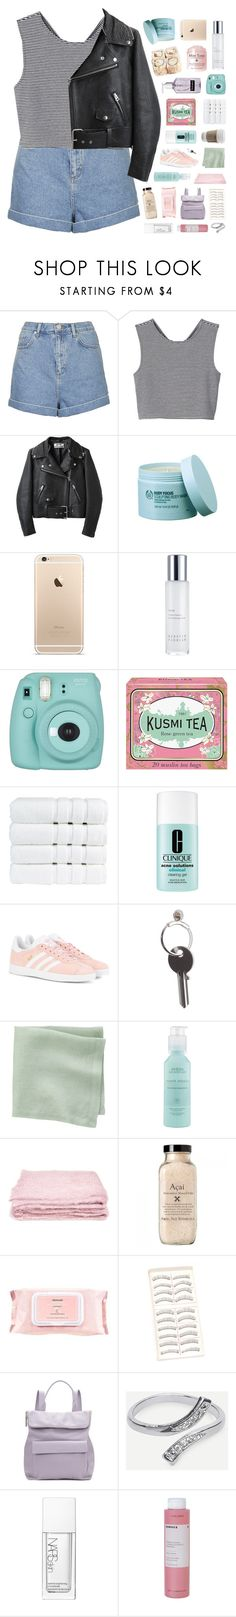 """""""put your kisses on my lips"""" by city-pool ❤ liked on Polyvore featuring Topshop, Monki, Acne Studios, The Body Shop, Kerstin Florian, Fujifilm, Kusmi Tea, Christy, Clinique and adidas Originals"""